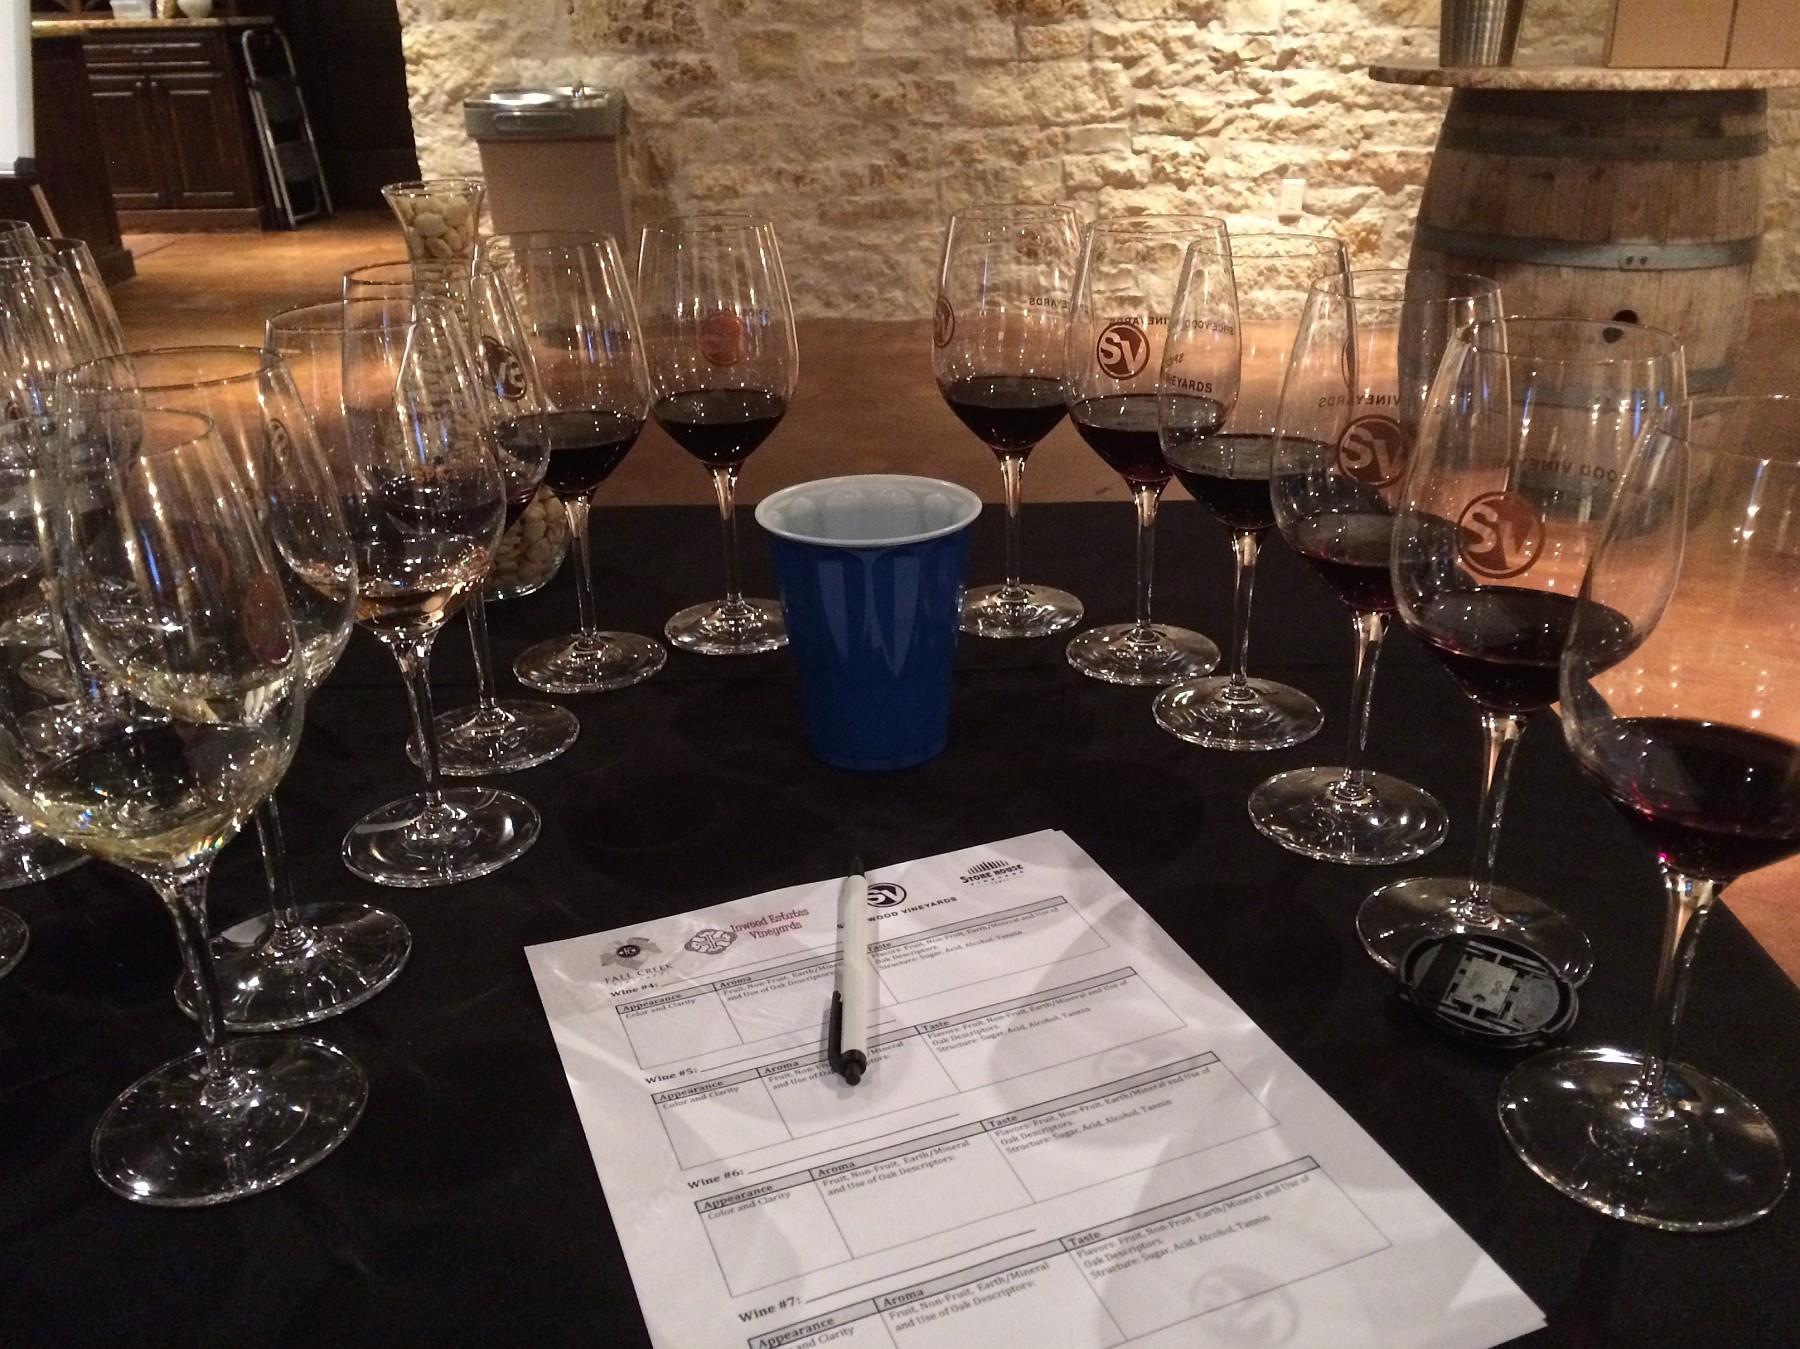 Ready for Tasting